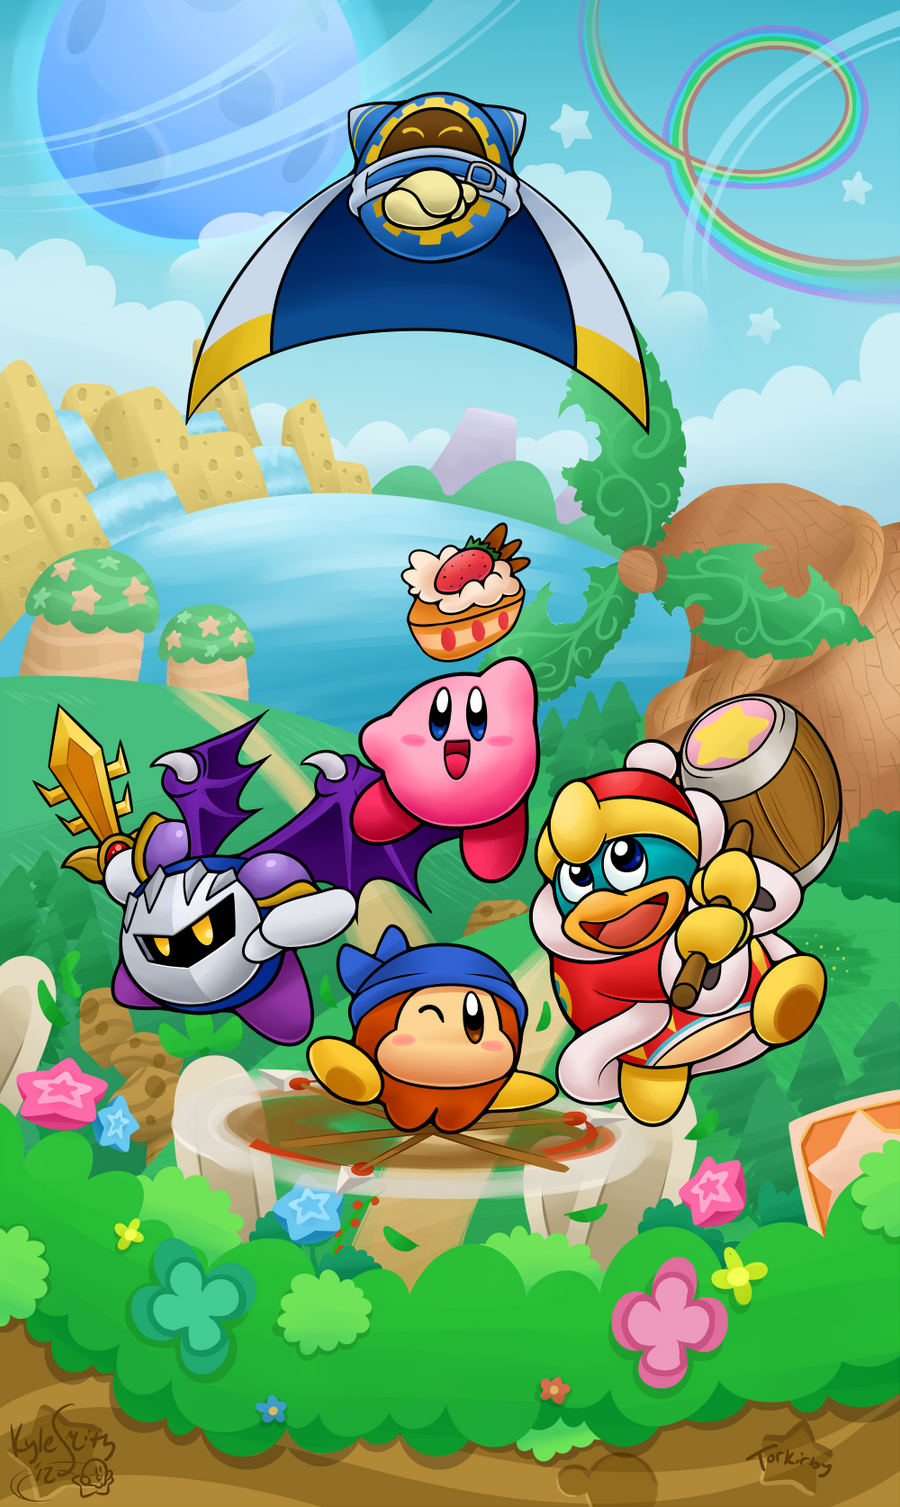 Magolor explore magolor on deviantart markproductions 311 185 kirbys return to dream land by torkirby voltagebd Image collections